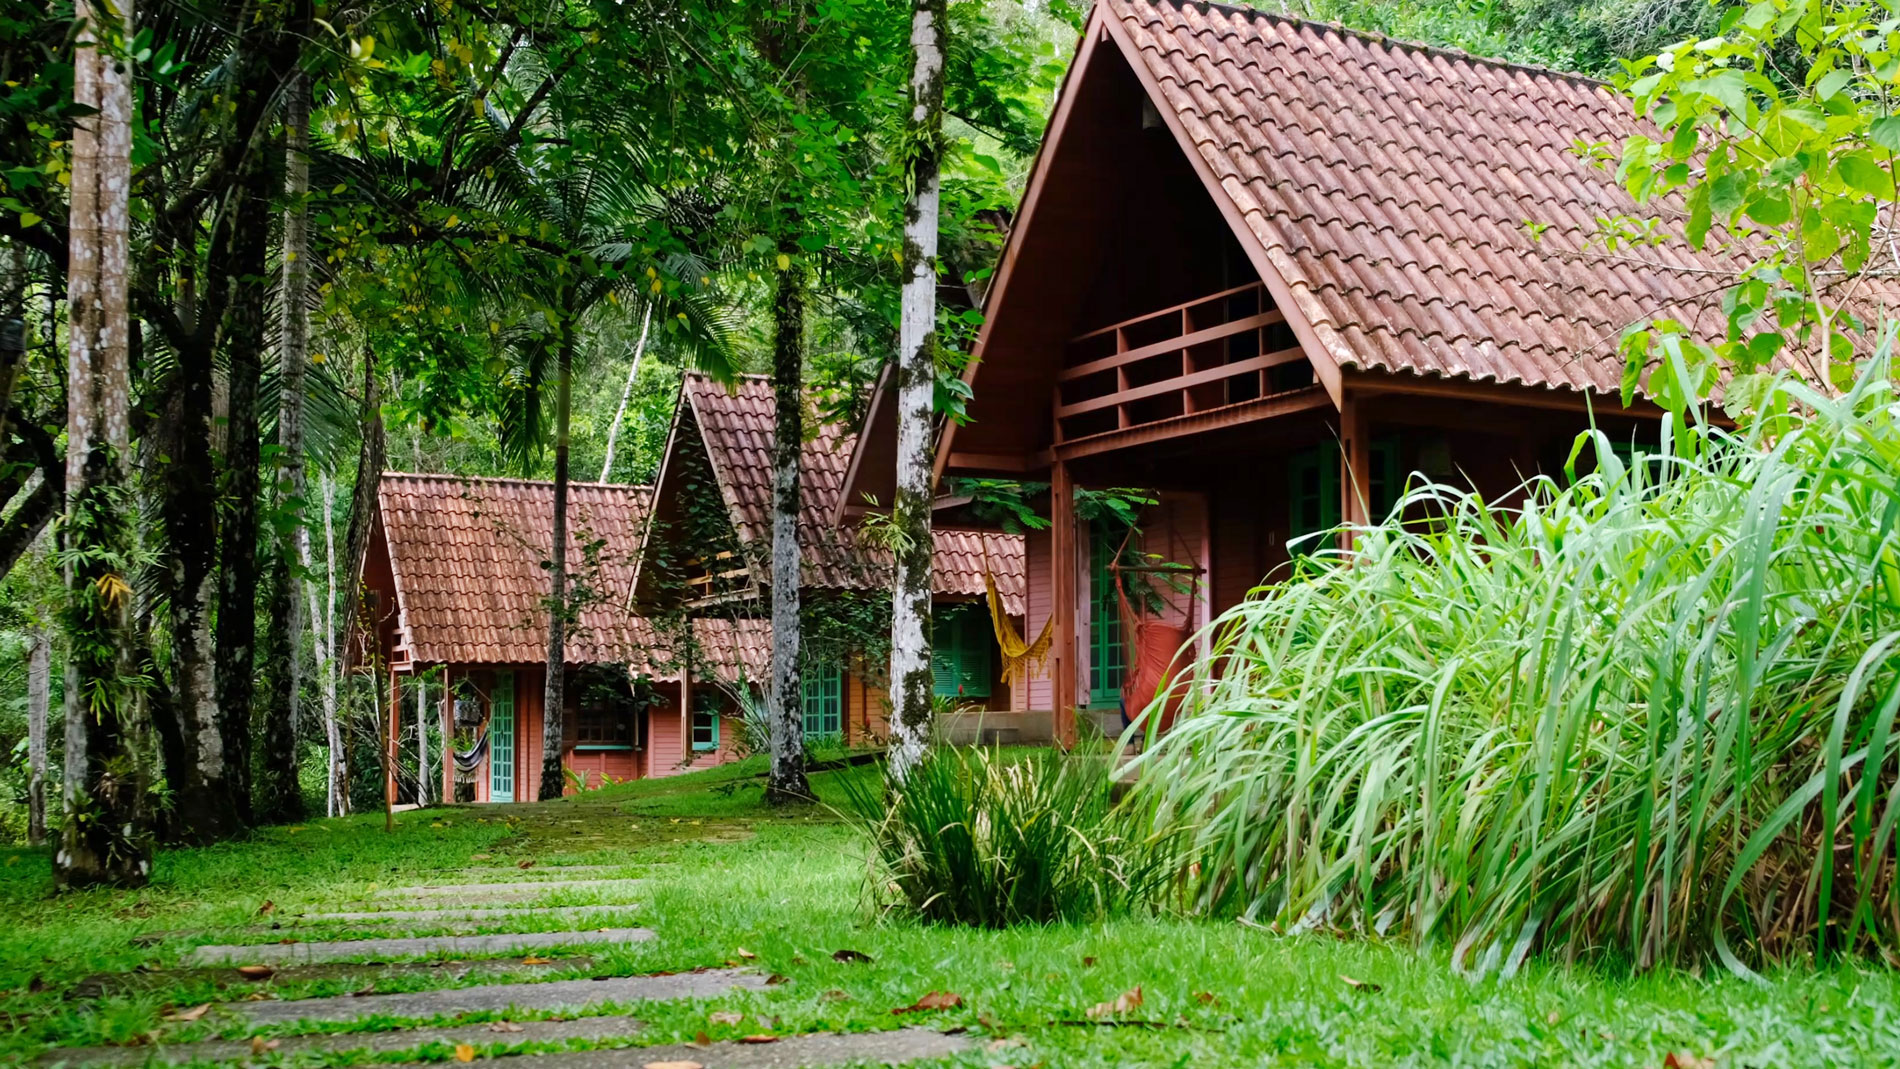 House in Salve Floresta eco-lodge